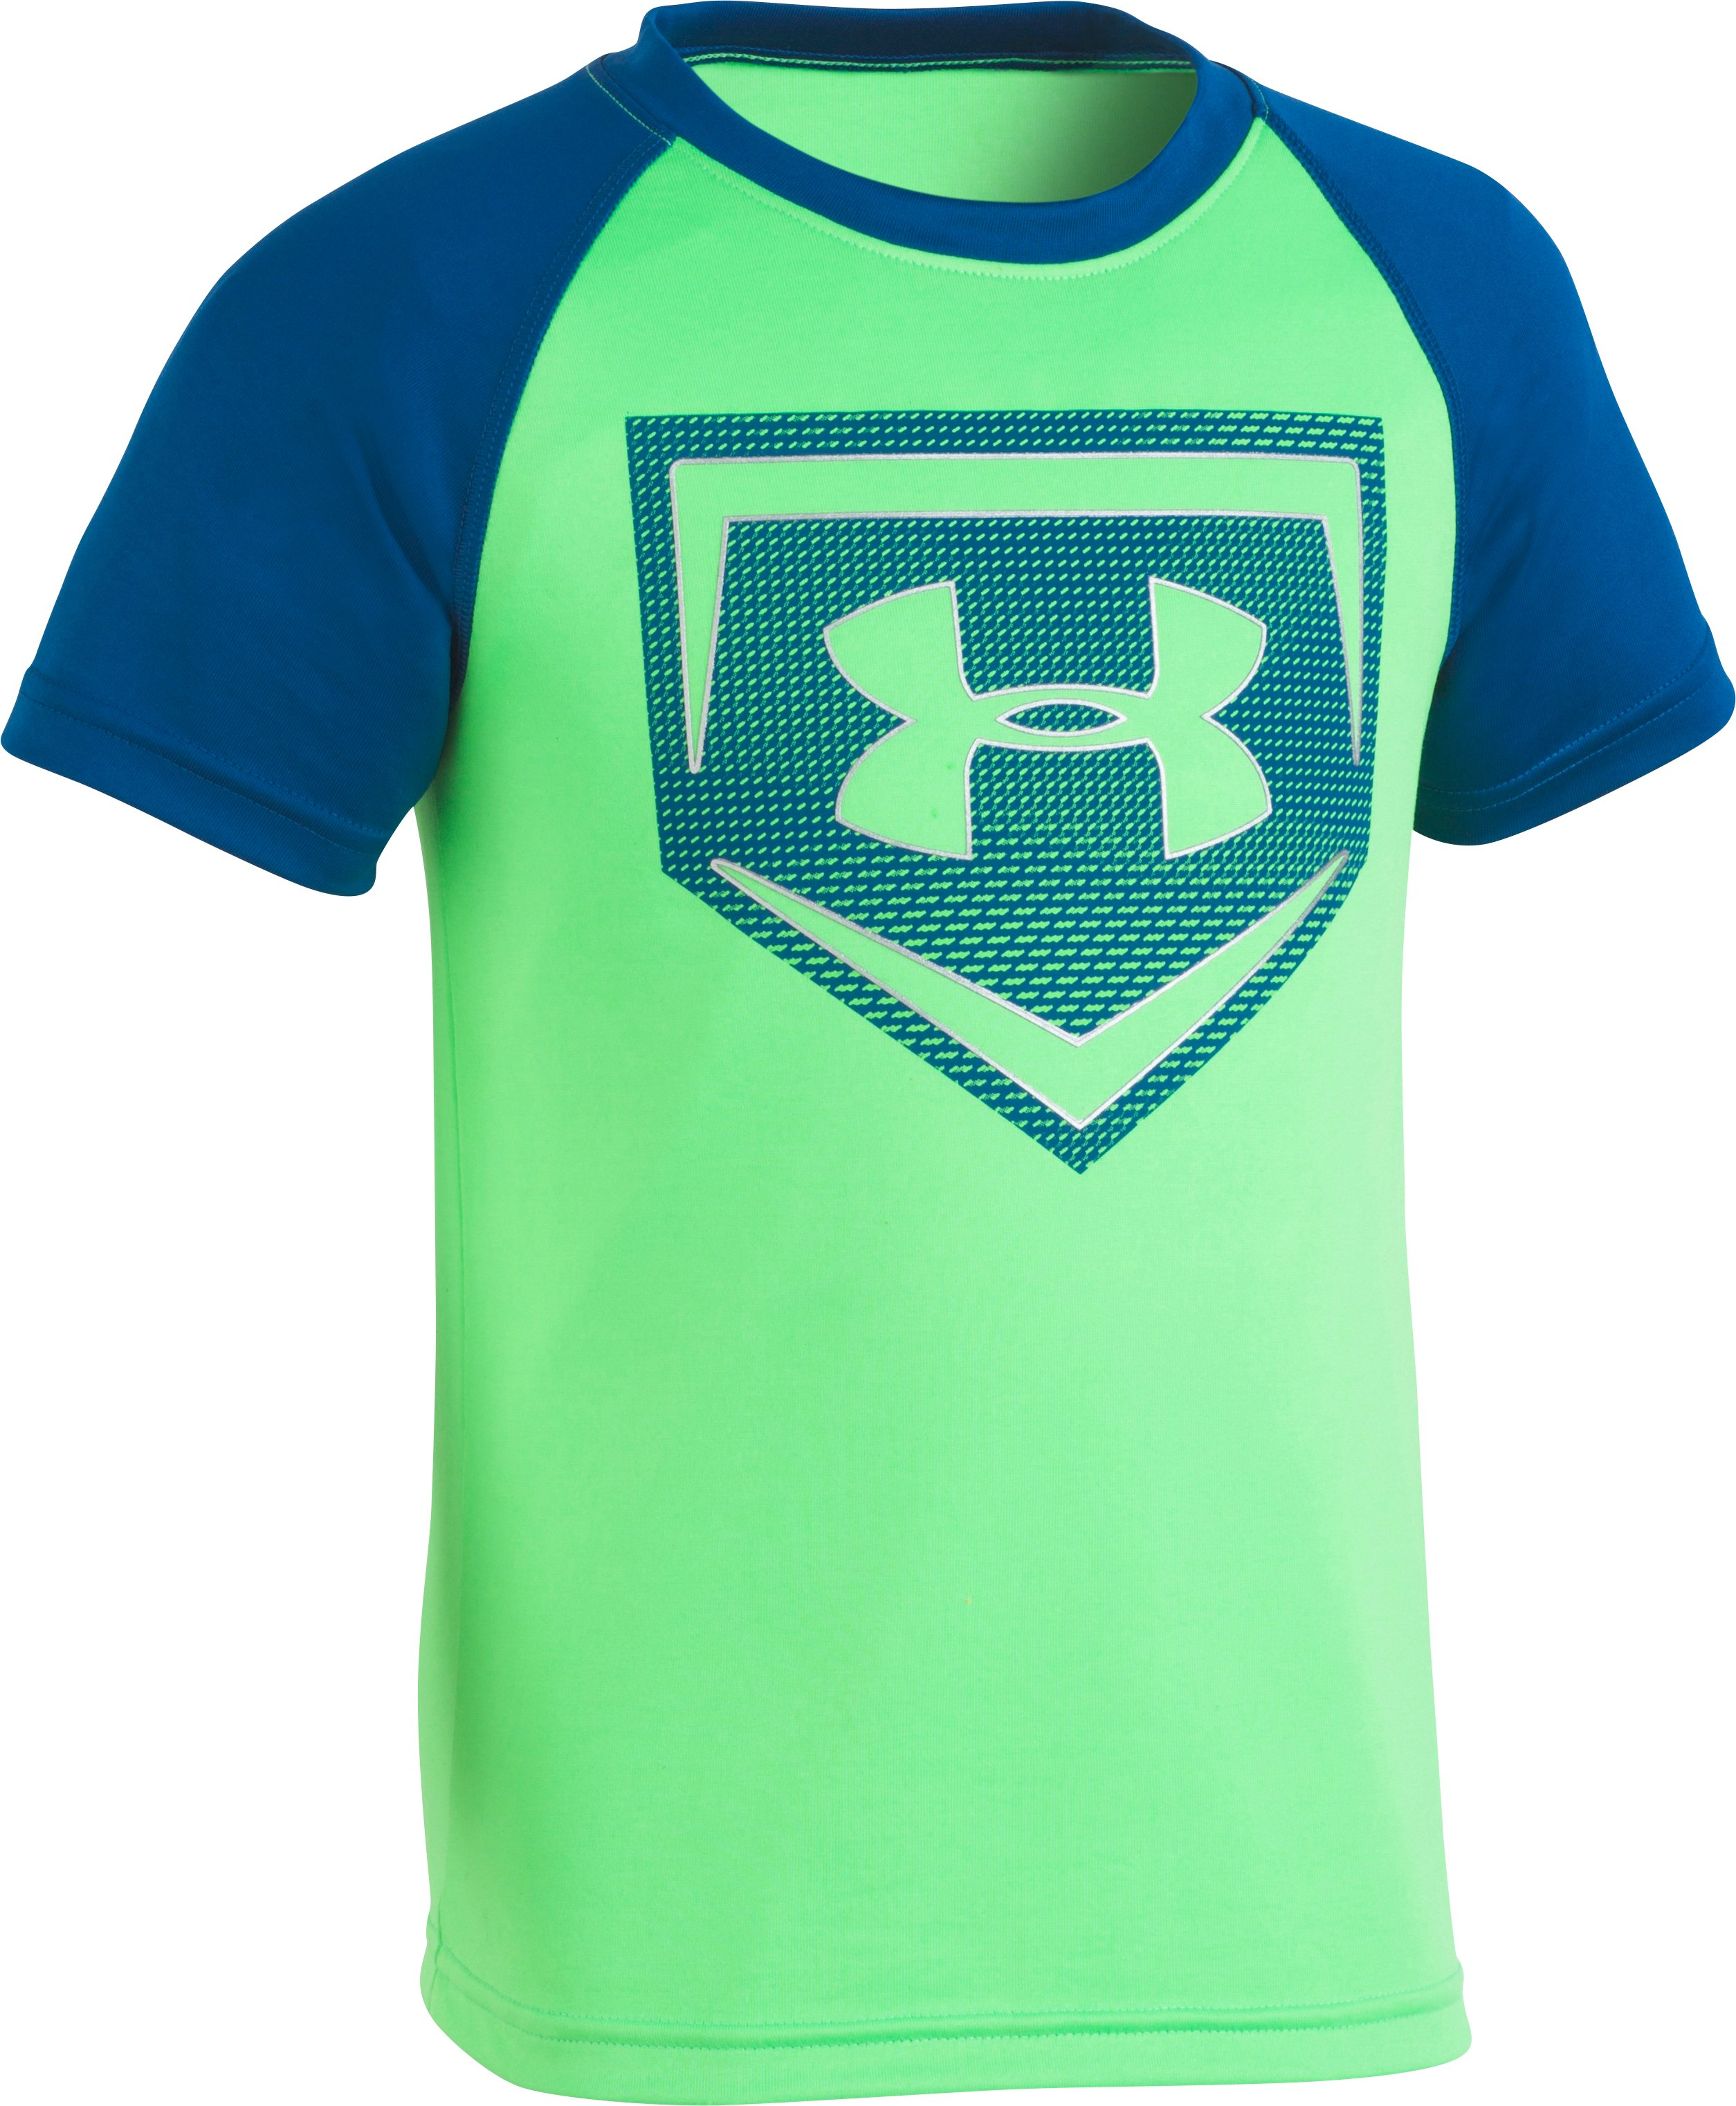 Boys' Toddler UA Metallic Sync Homeplate T-Shirt, Arena Green